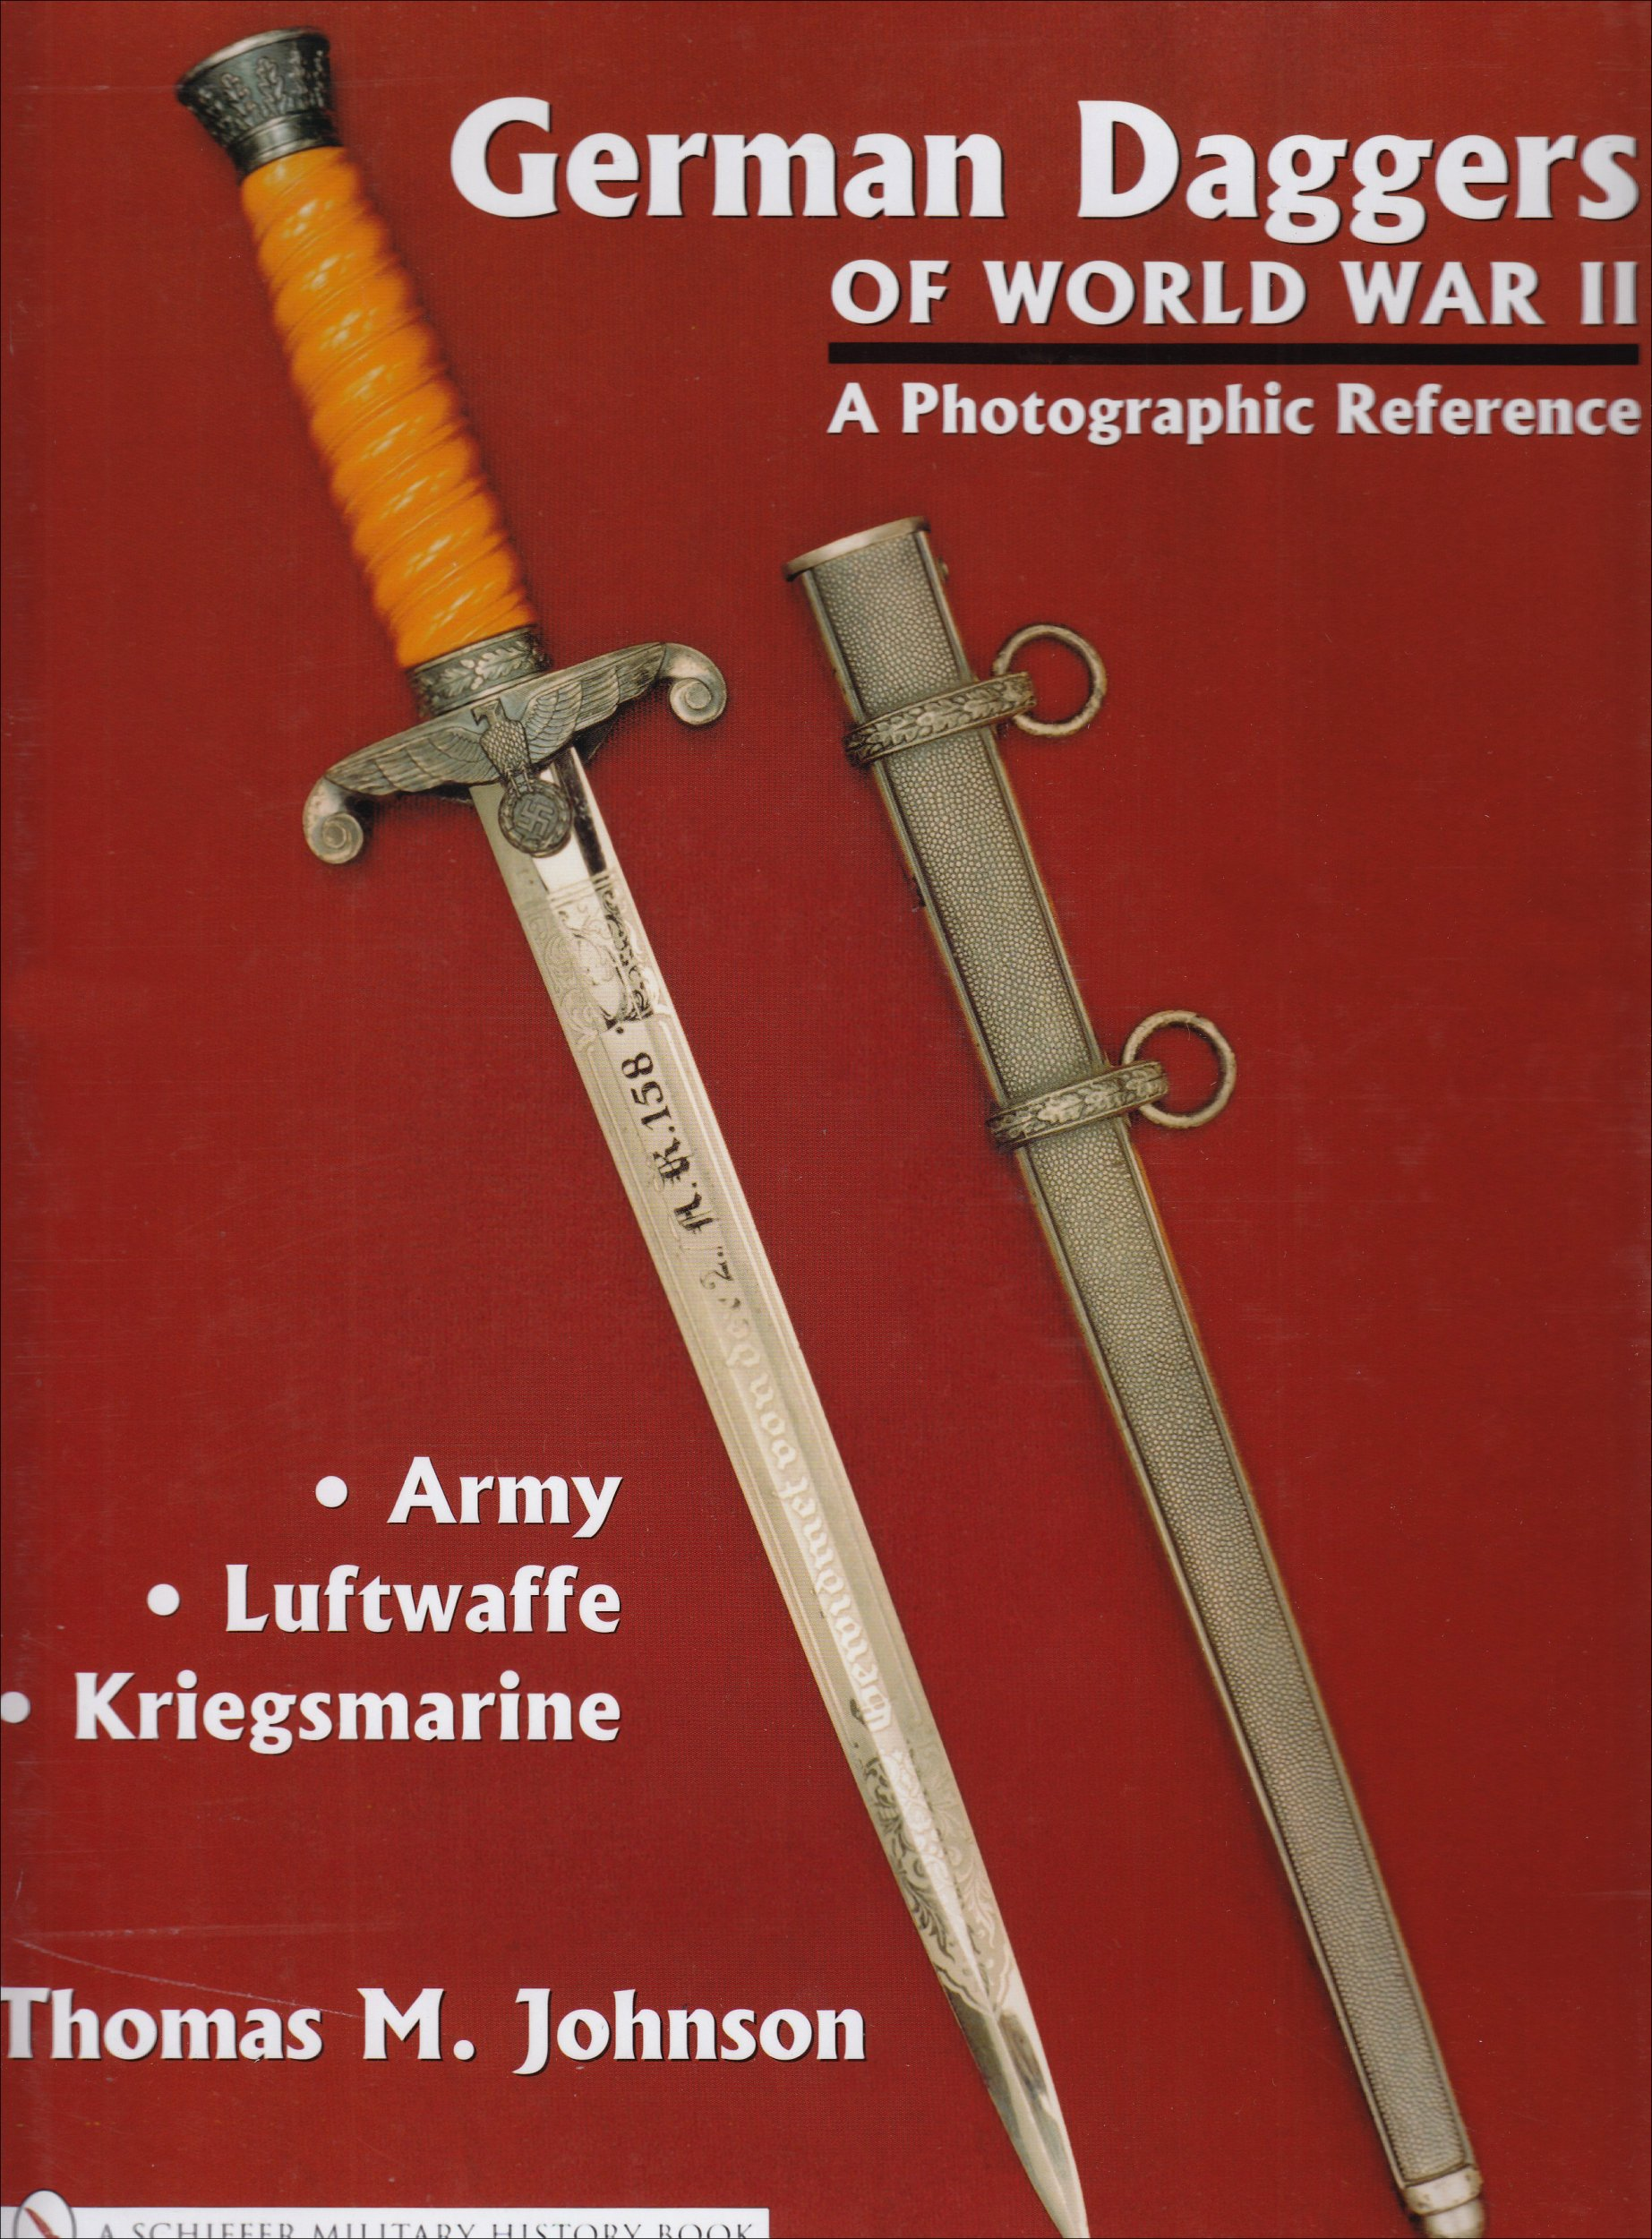 German Daggers Of World War II - A Photographic Reference: Army - Luftwaffe - Kriegsmarine ebook